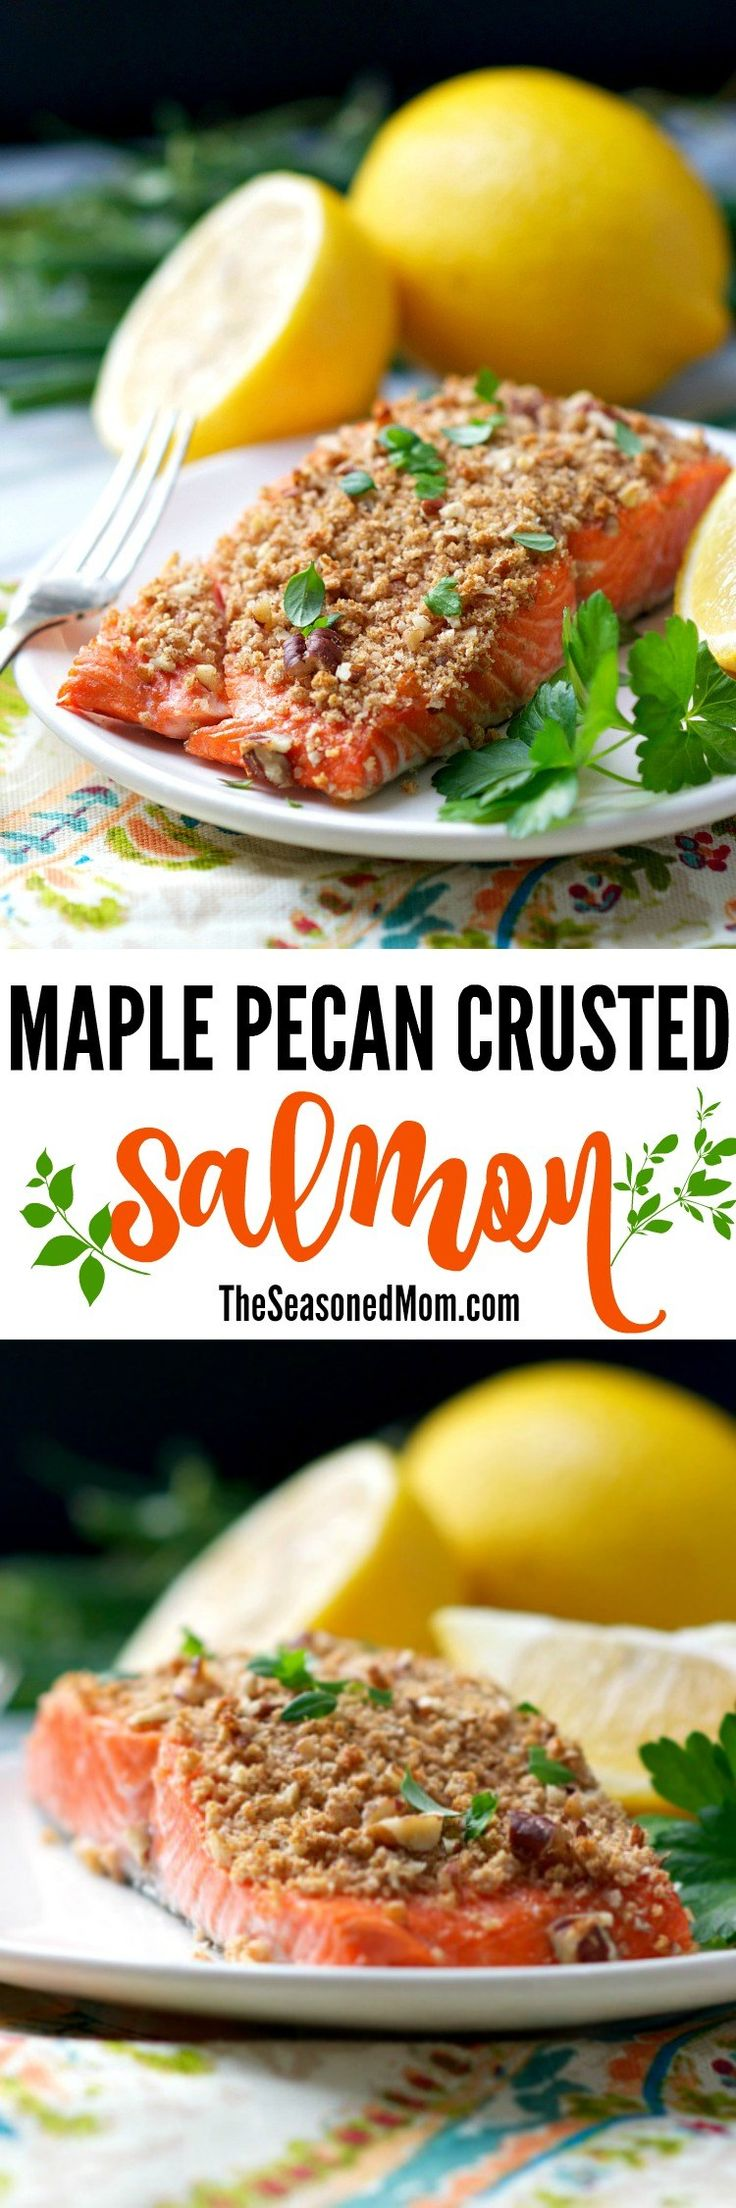 This Maple Pecan Crusted Salmon is a fresh, easy, and healthy clean eating seafood dinner recipe to change up your boring old fish routine -- and it's ready in 20 minutes!